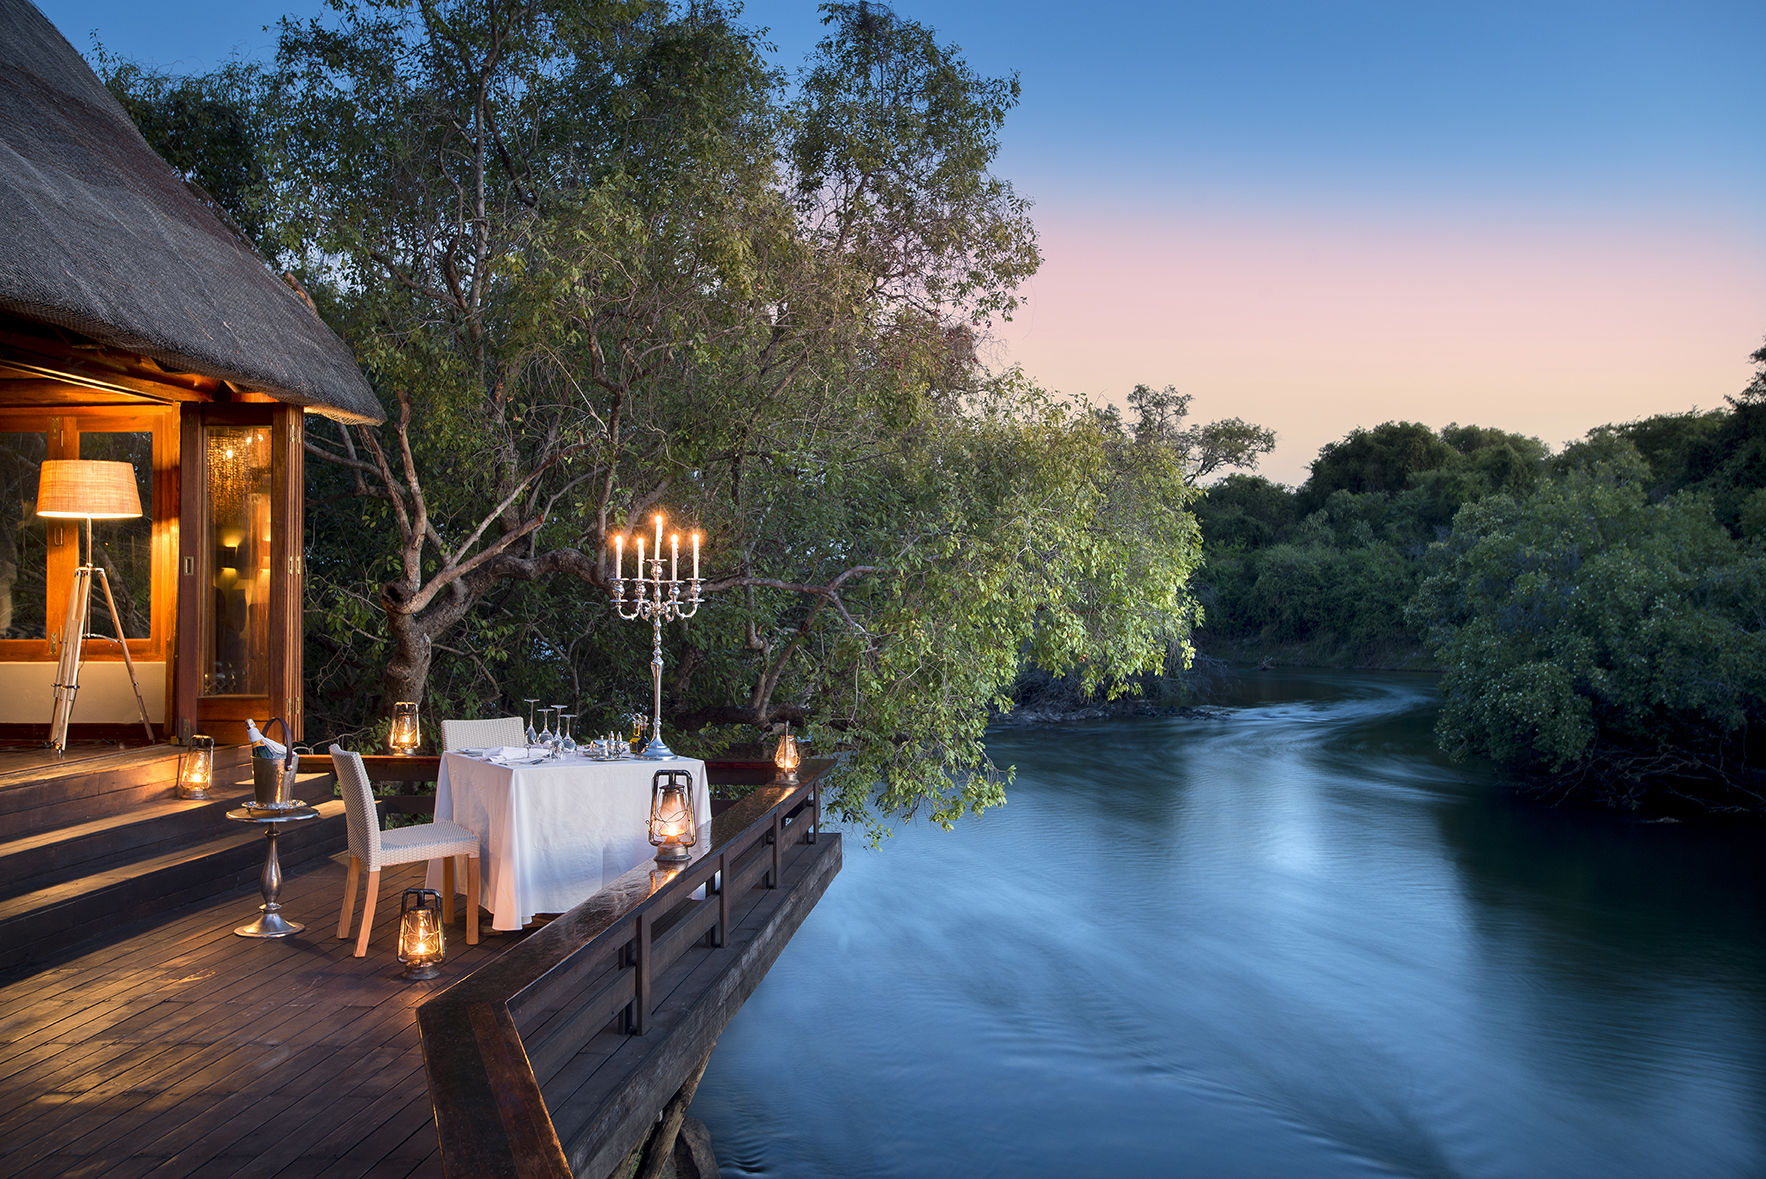 The world's most romantic dinner setting